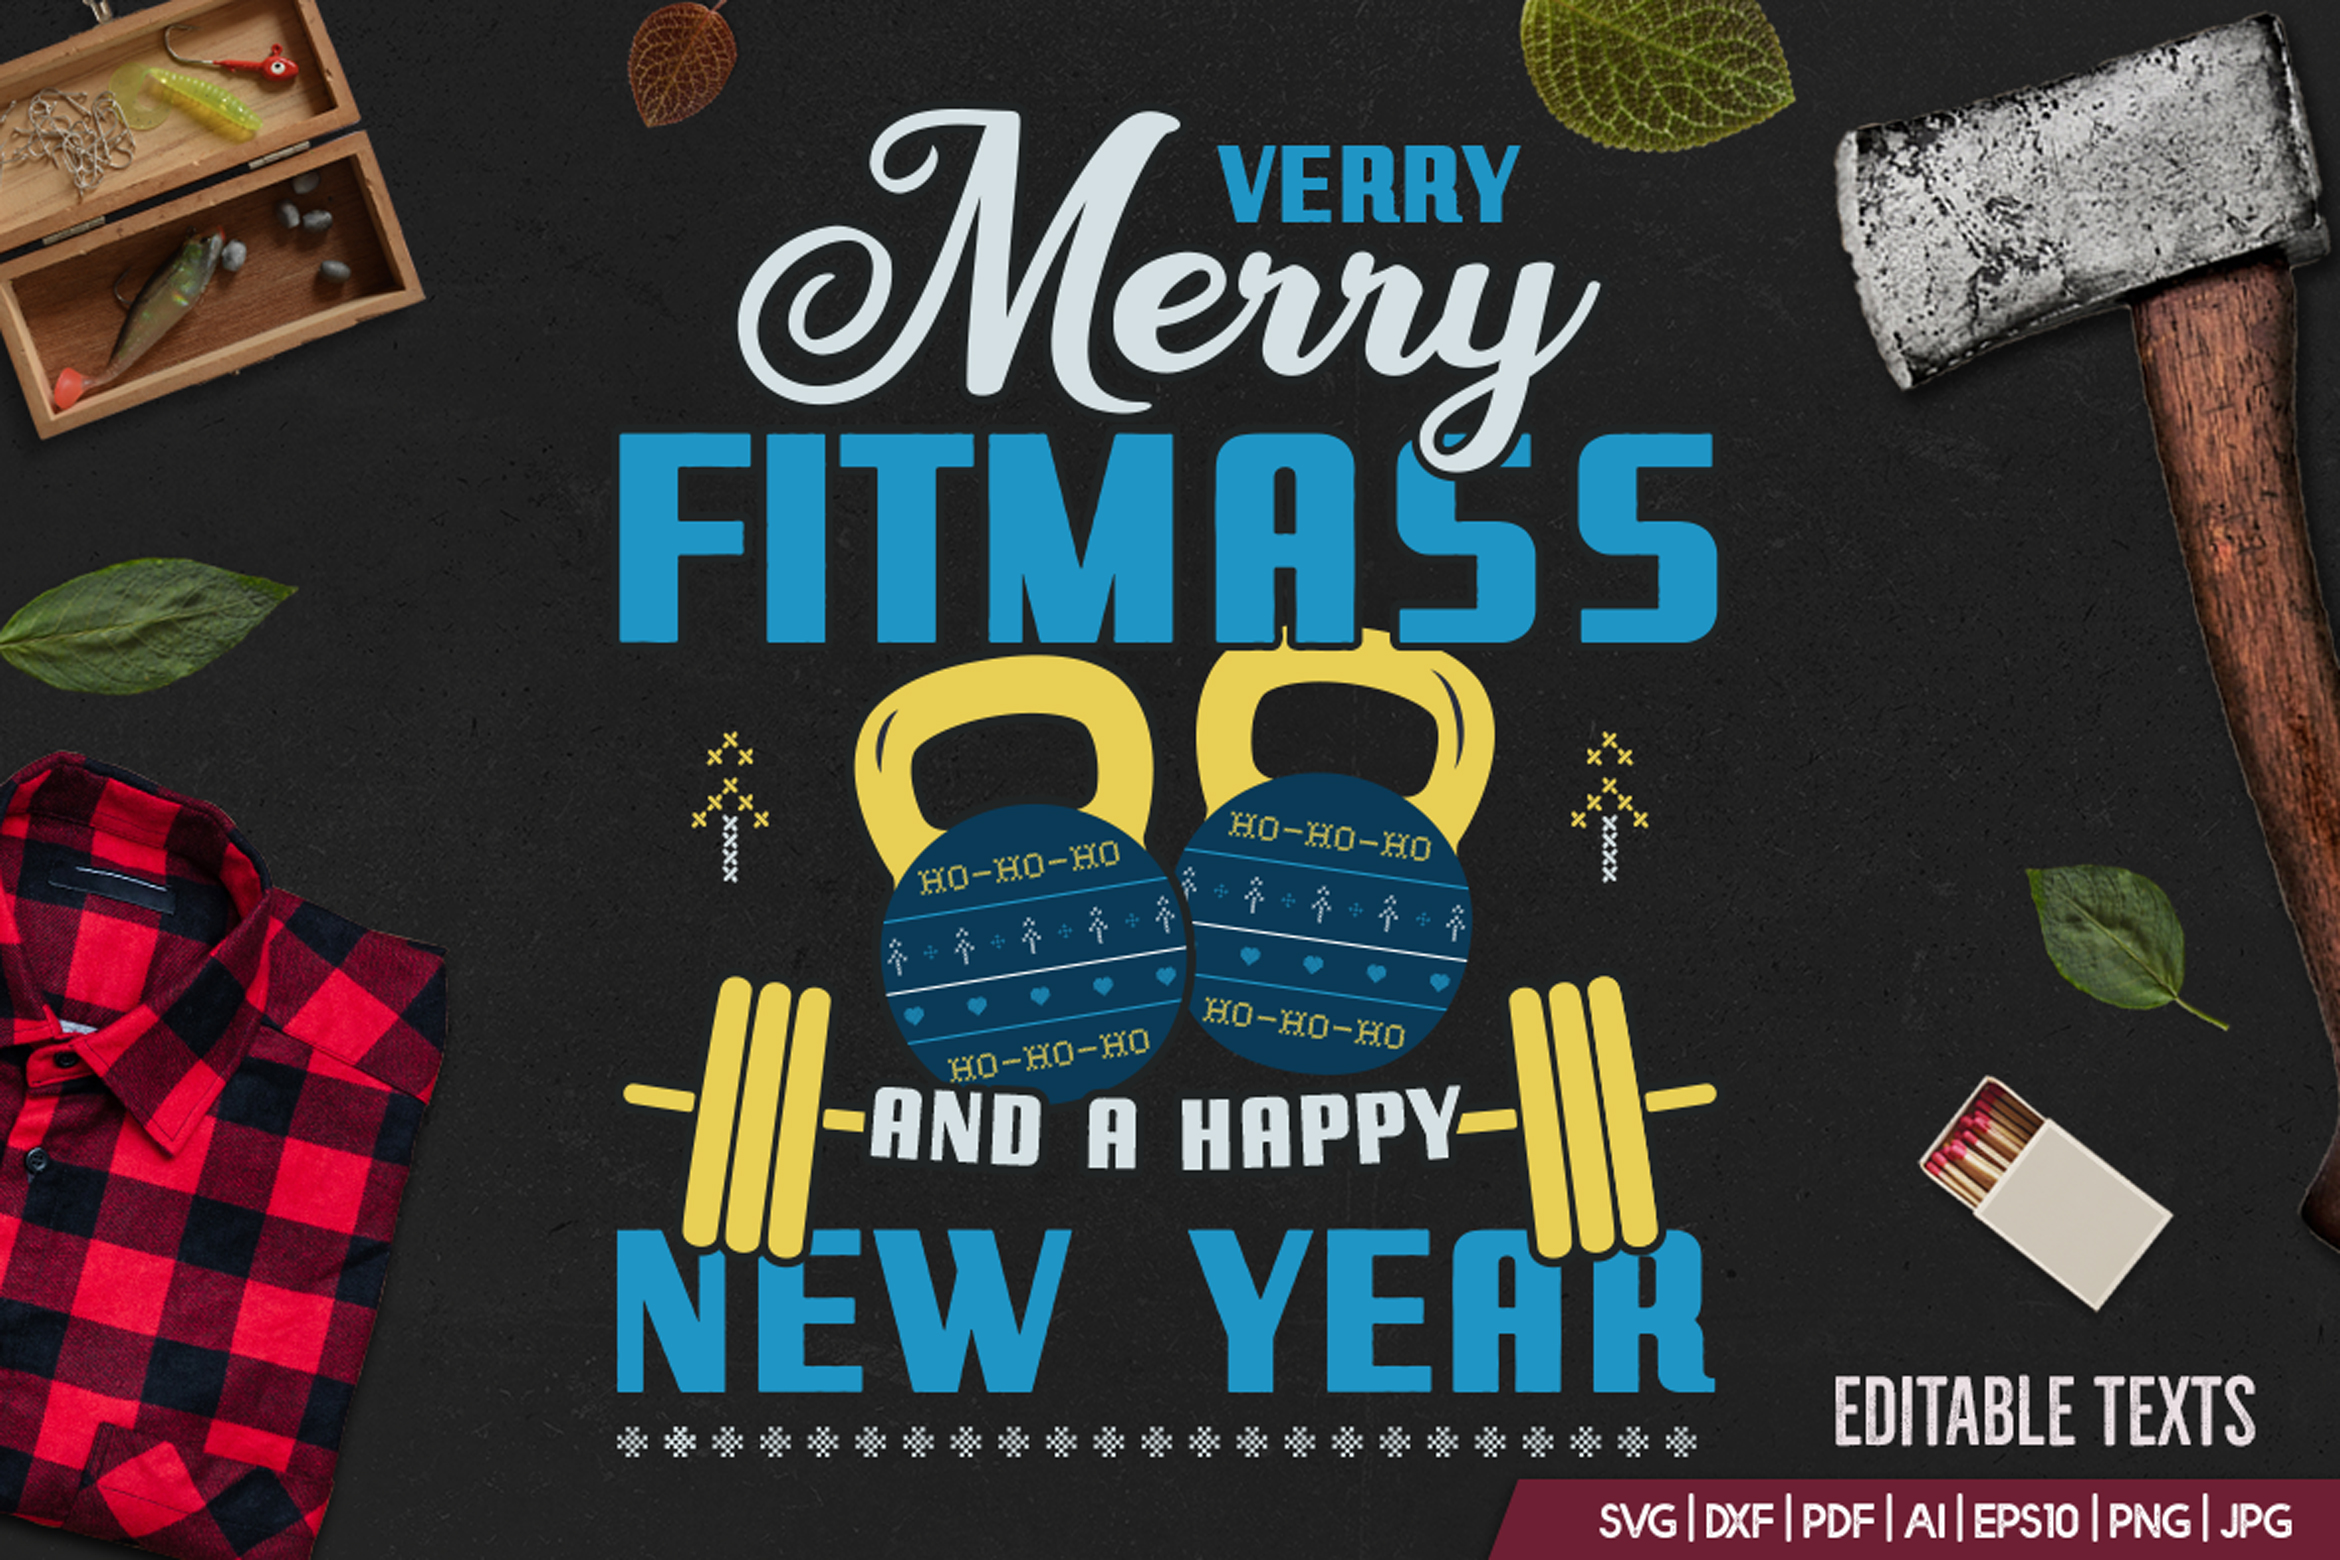 Merry Fitmass, Happy New Year Tshirt, Xmas Design SVG File example image 2